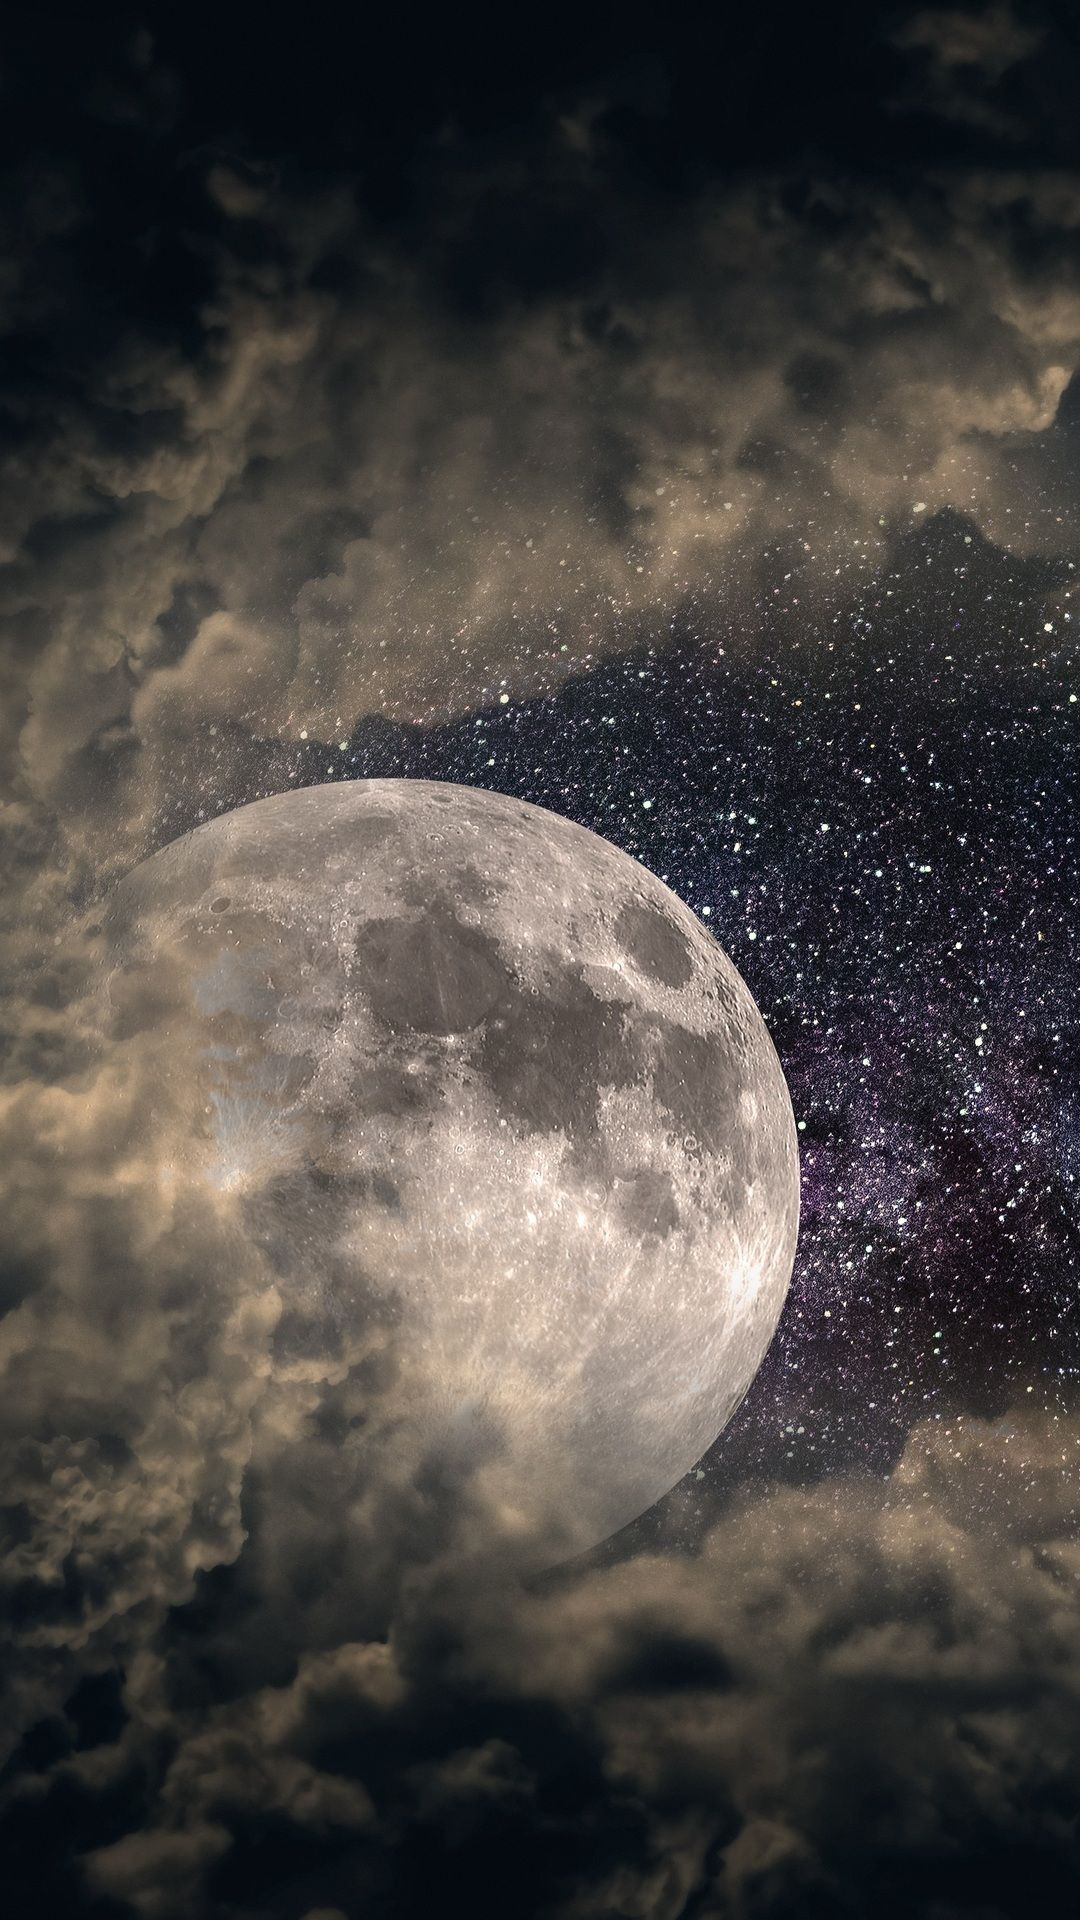 Clouds Moon Universe Stars 5k In 1080x1920 Resolution Nature Wallpaper Clouds Moon